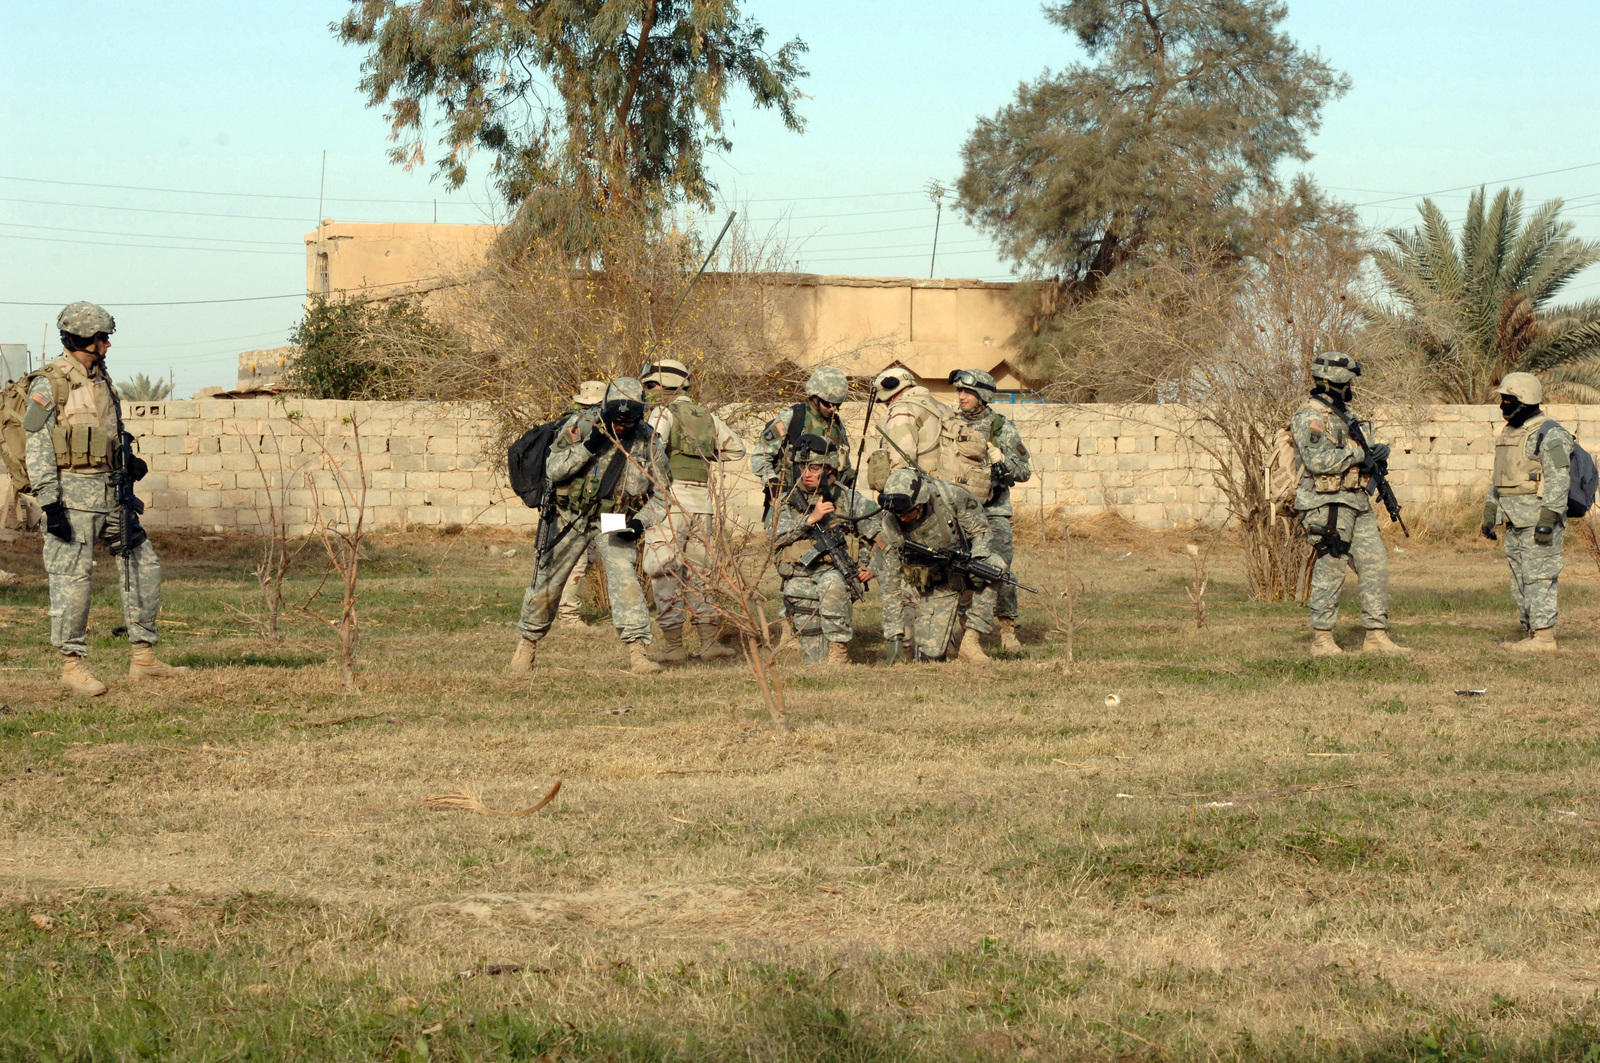 On Dec. 30, 2005 soldiers from Bravo Company, 2nd Bn, 502nd INF conducted Search and Sweep Operations in the Village of Shakaria, Iraq. CAPT. Andre Rivier, B Company Commander walked from house to house to talk with locales.(U.S. Army photo by STAFF SGT. Kevin L. Moses Sr) (Released)